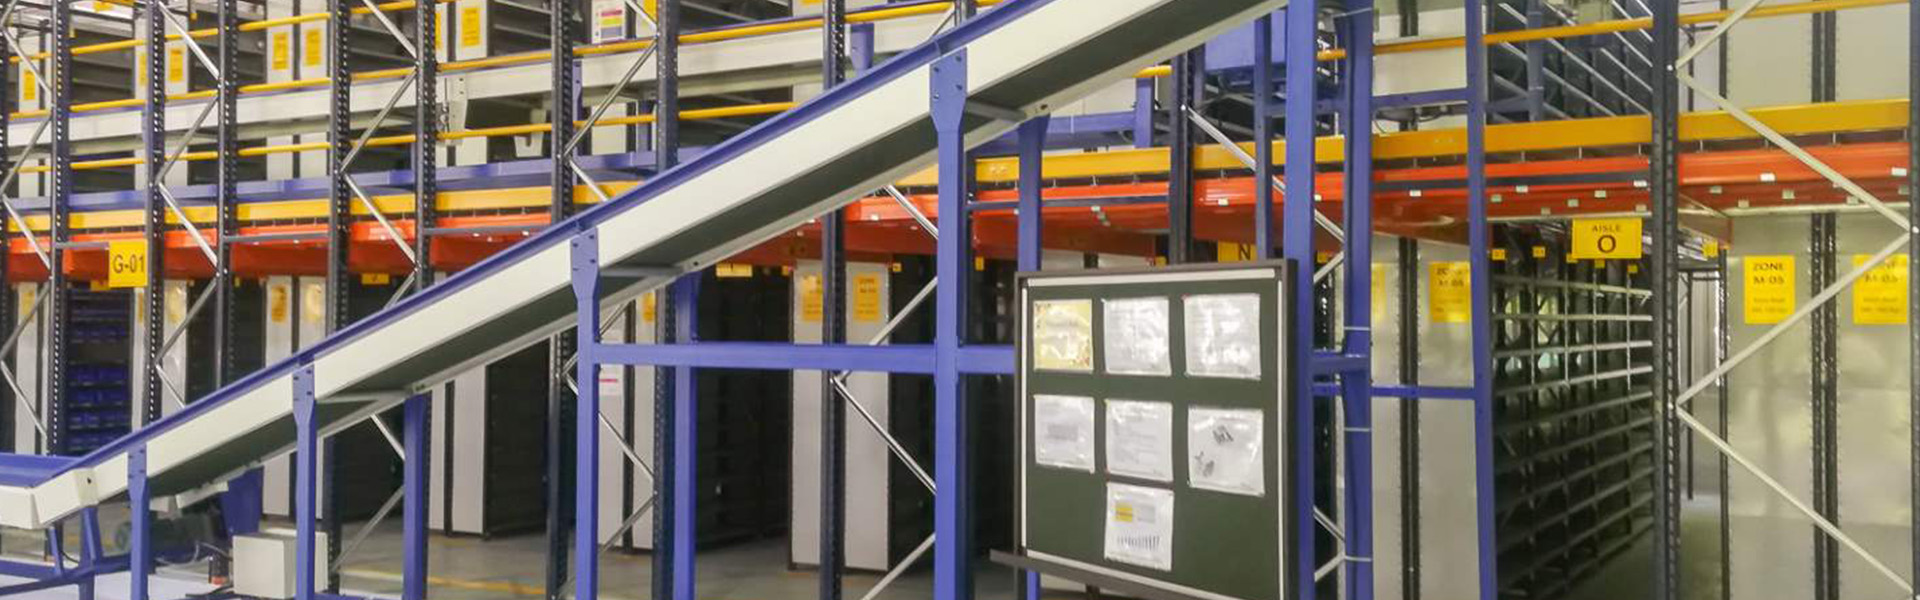 Video- Smart warehouse equipped with belt conveyor